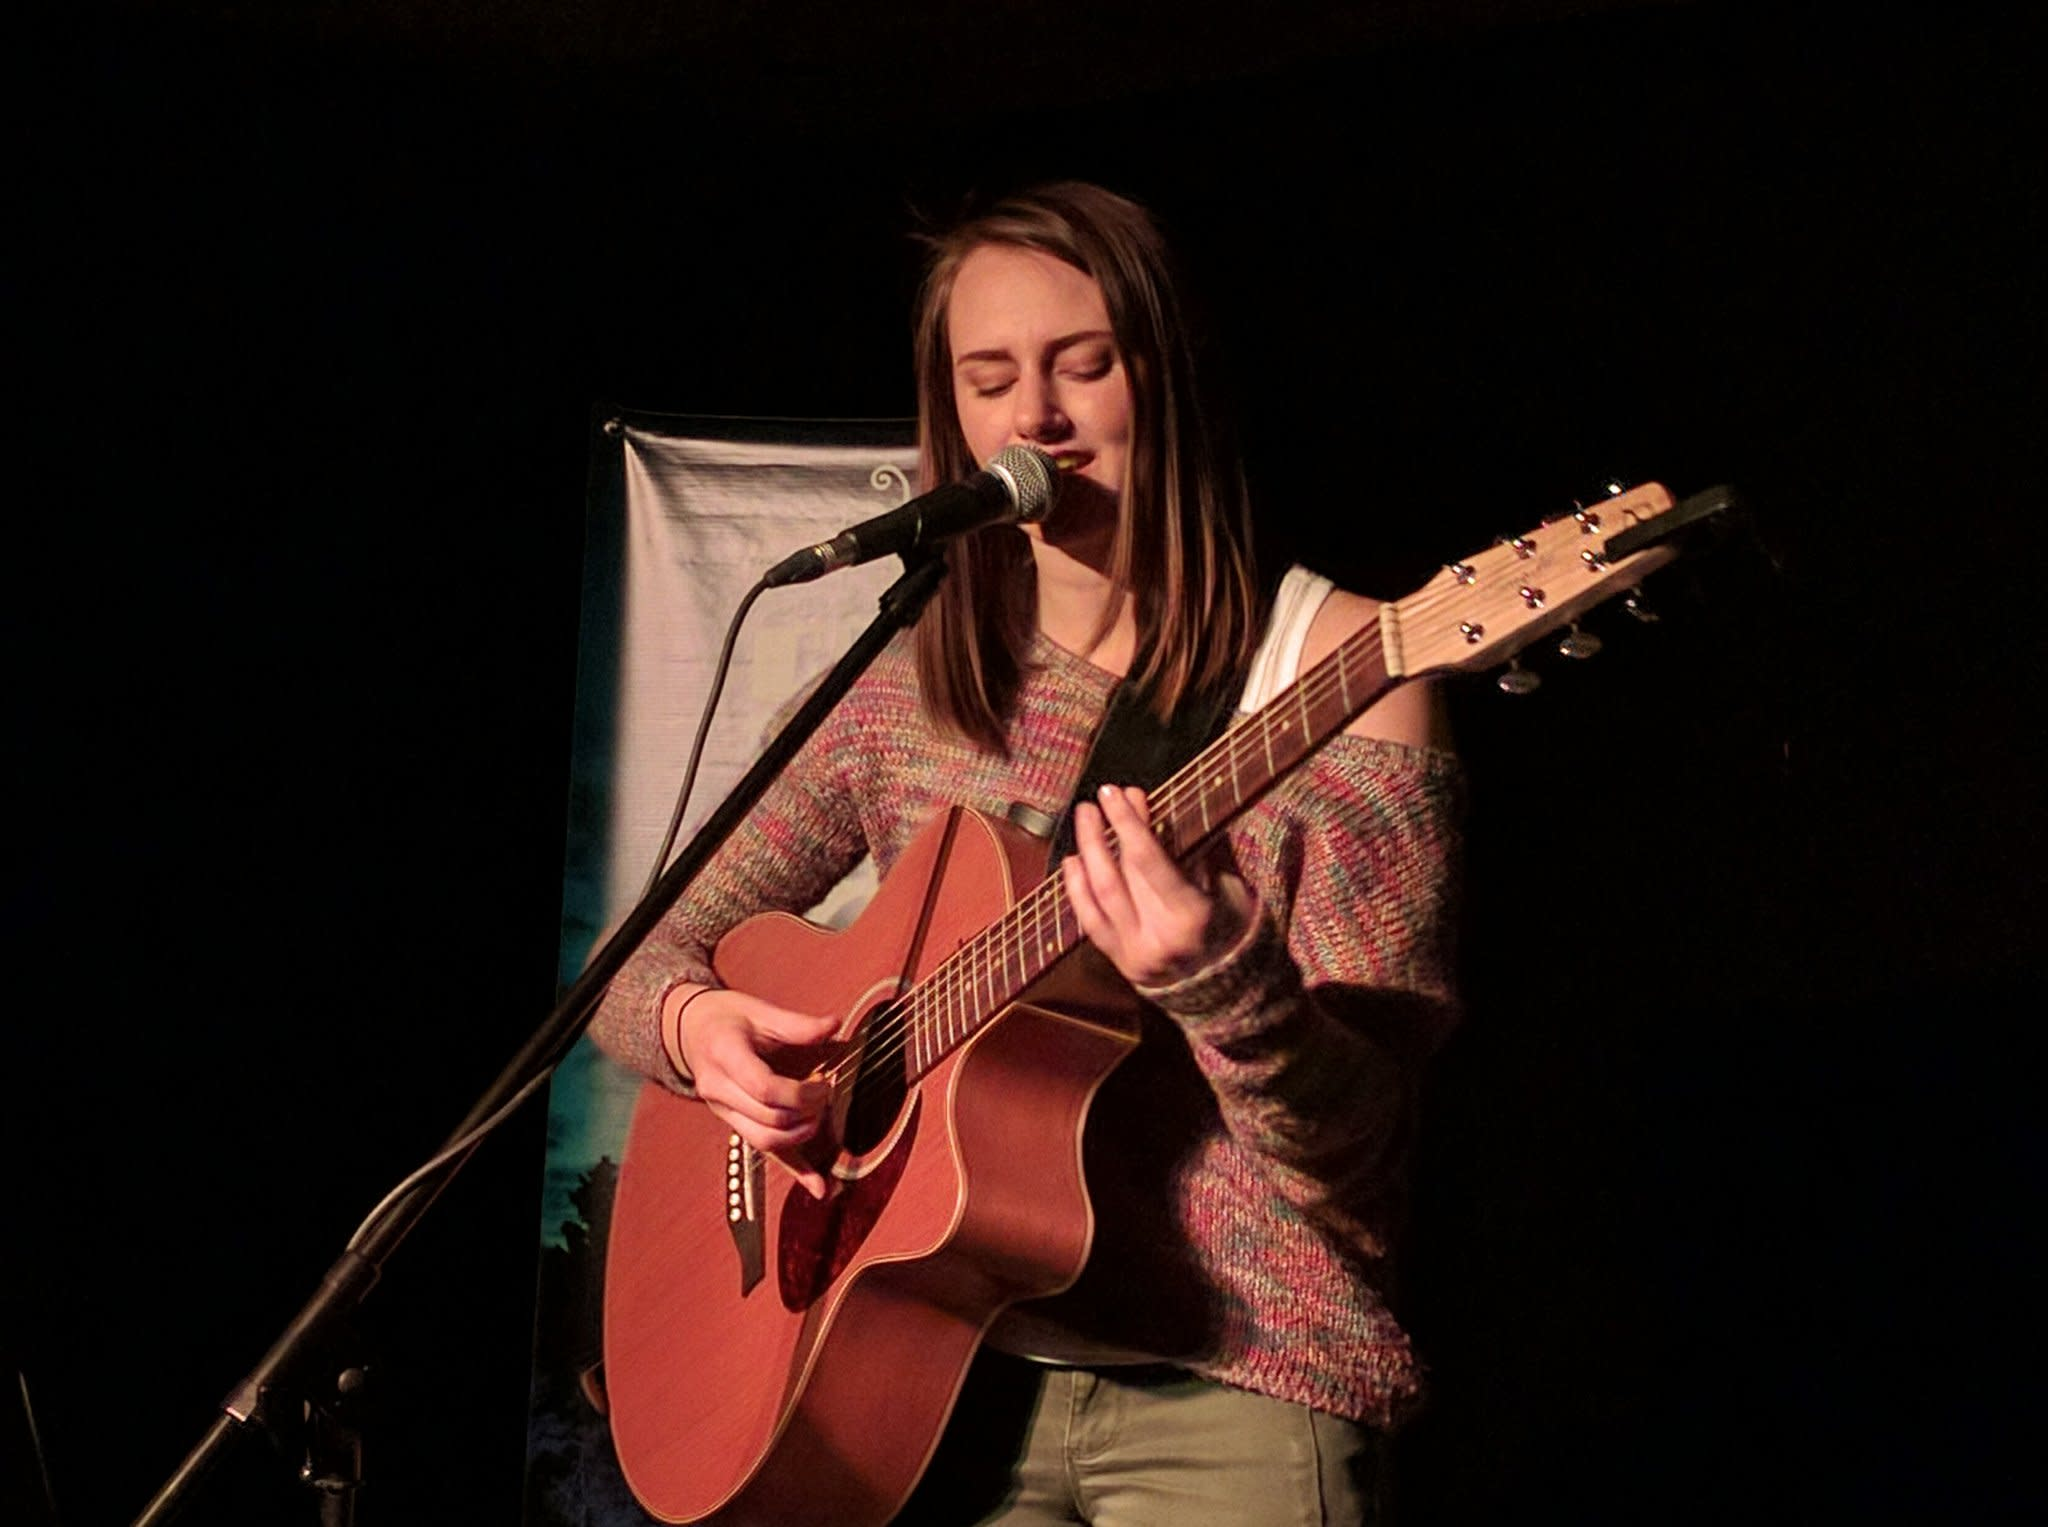 Kenzie Jane to perform at Cityplace Outdoor Terrace